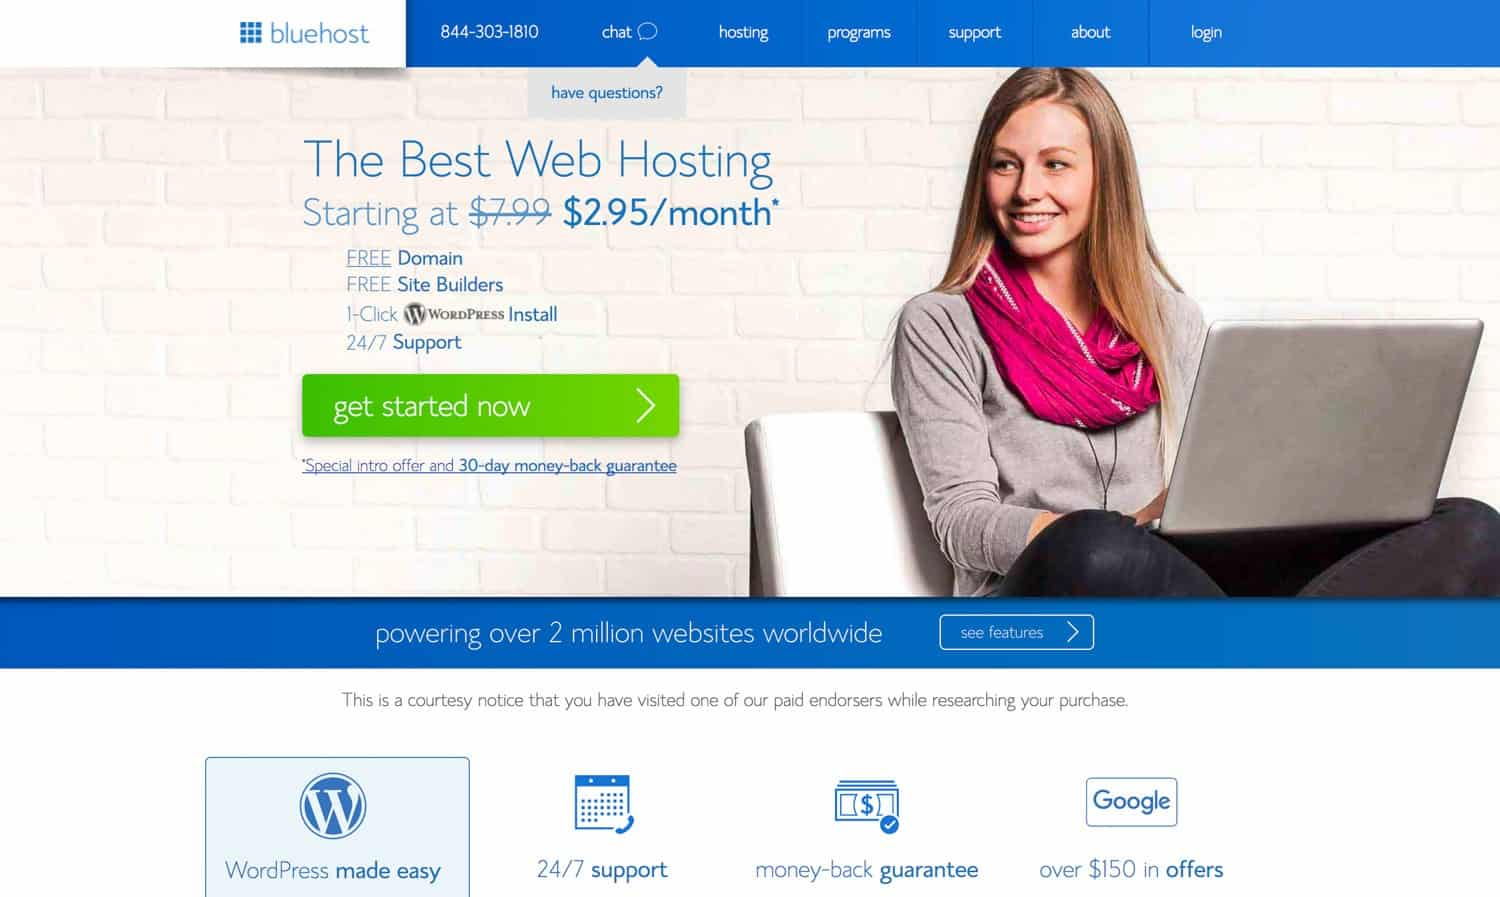 Bluehost sign-up screen for promo pricing